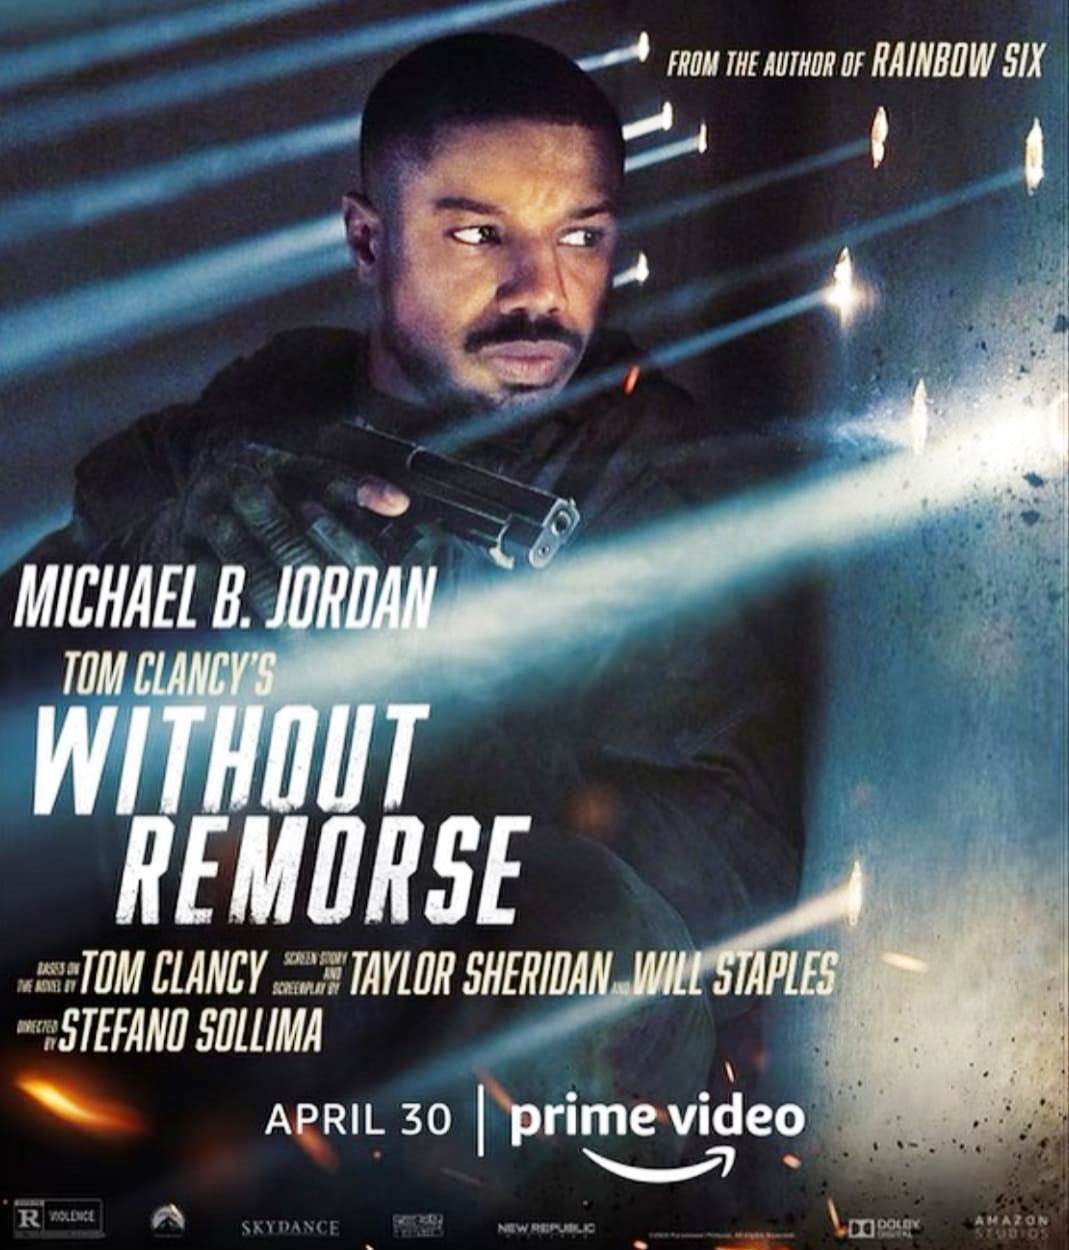 Things you should know before watching 'Without Remorse'